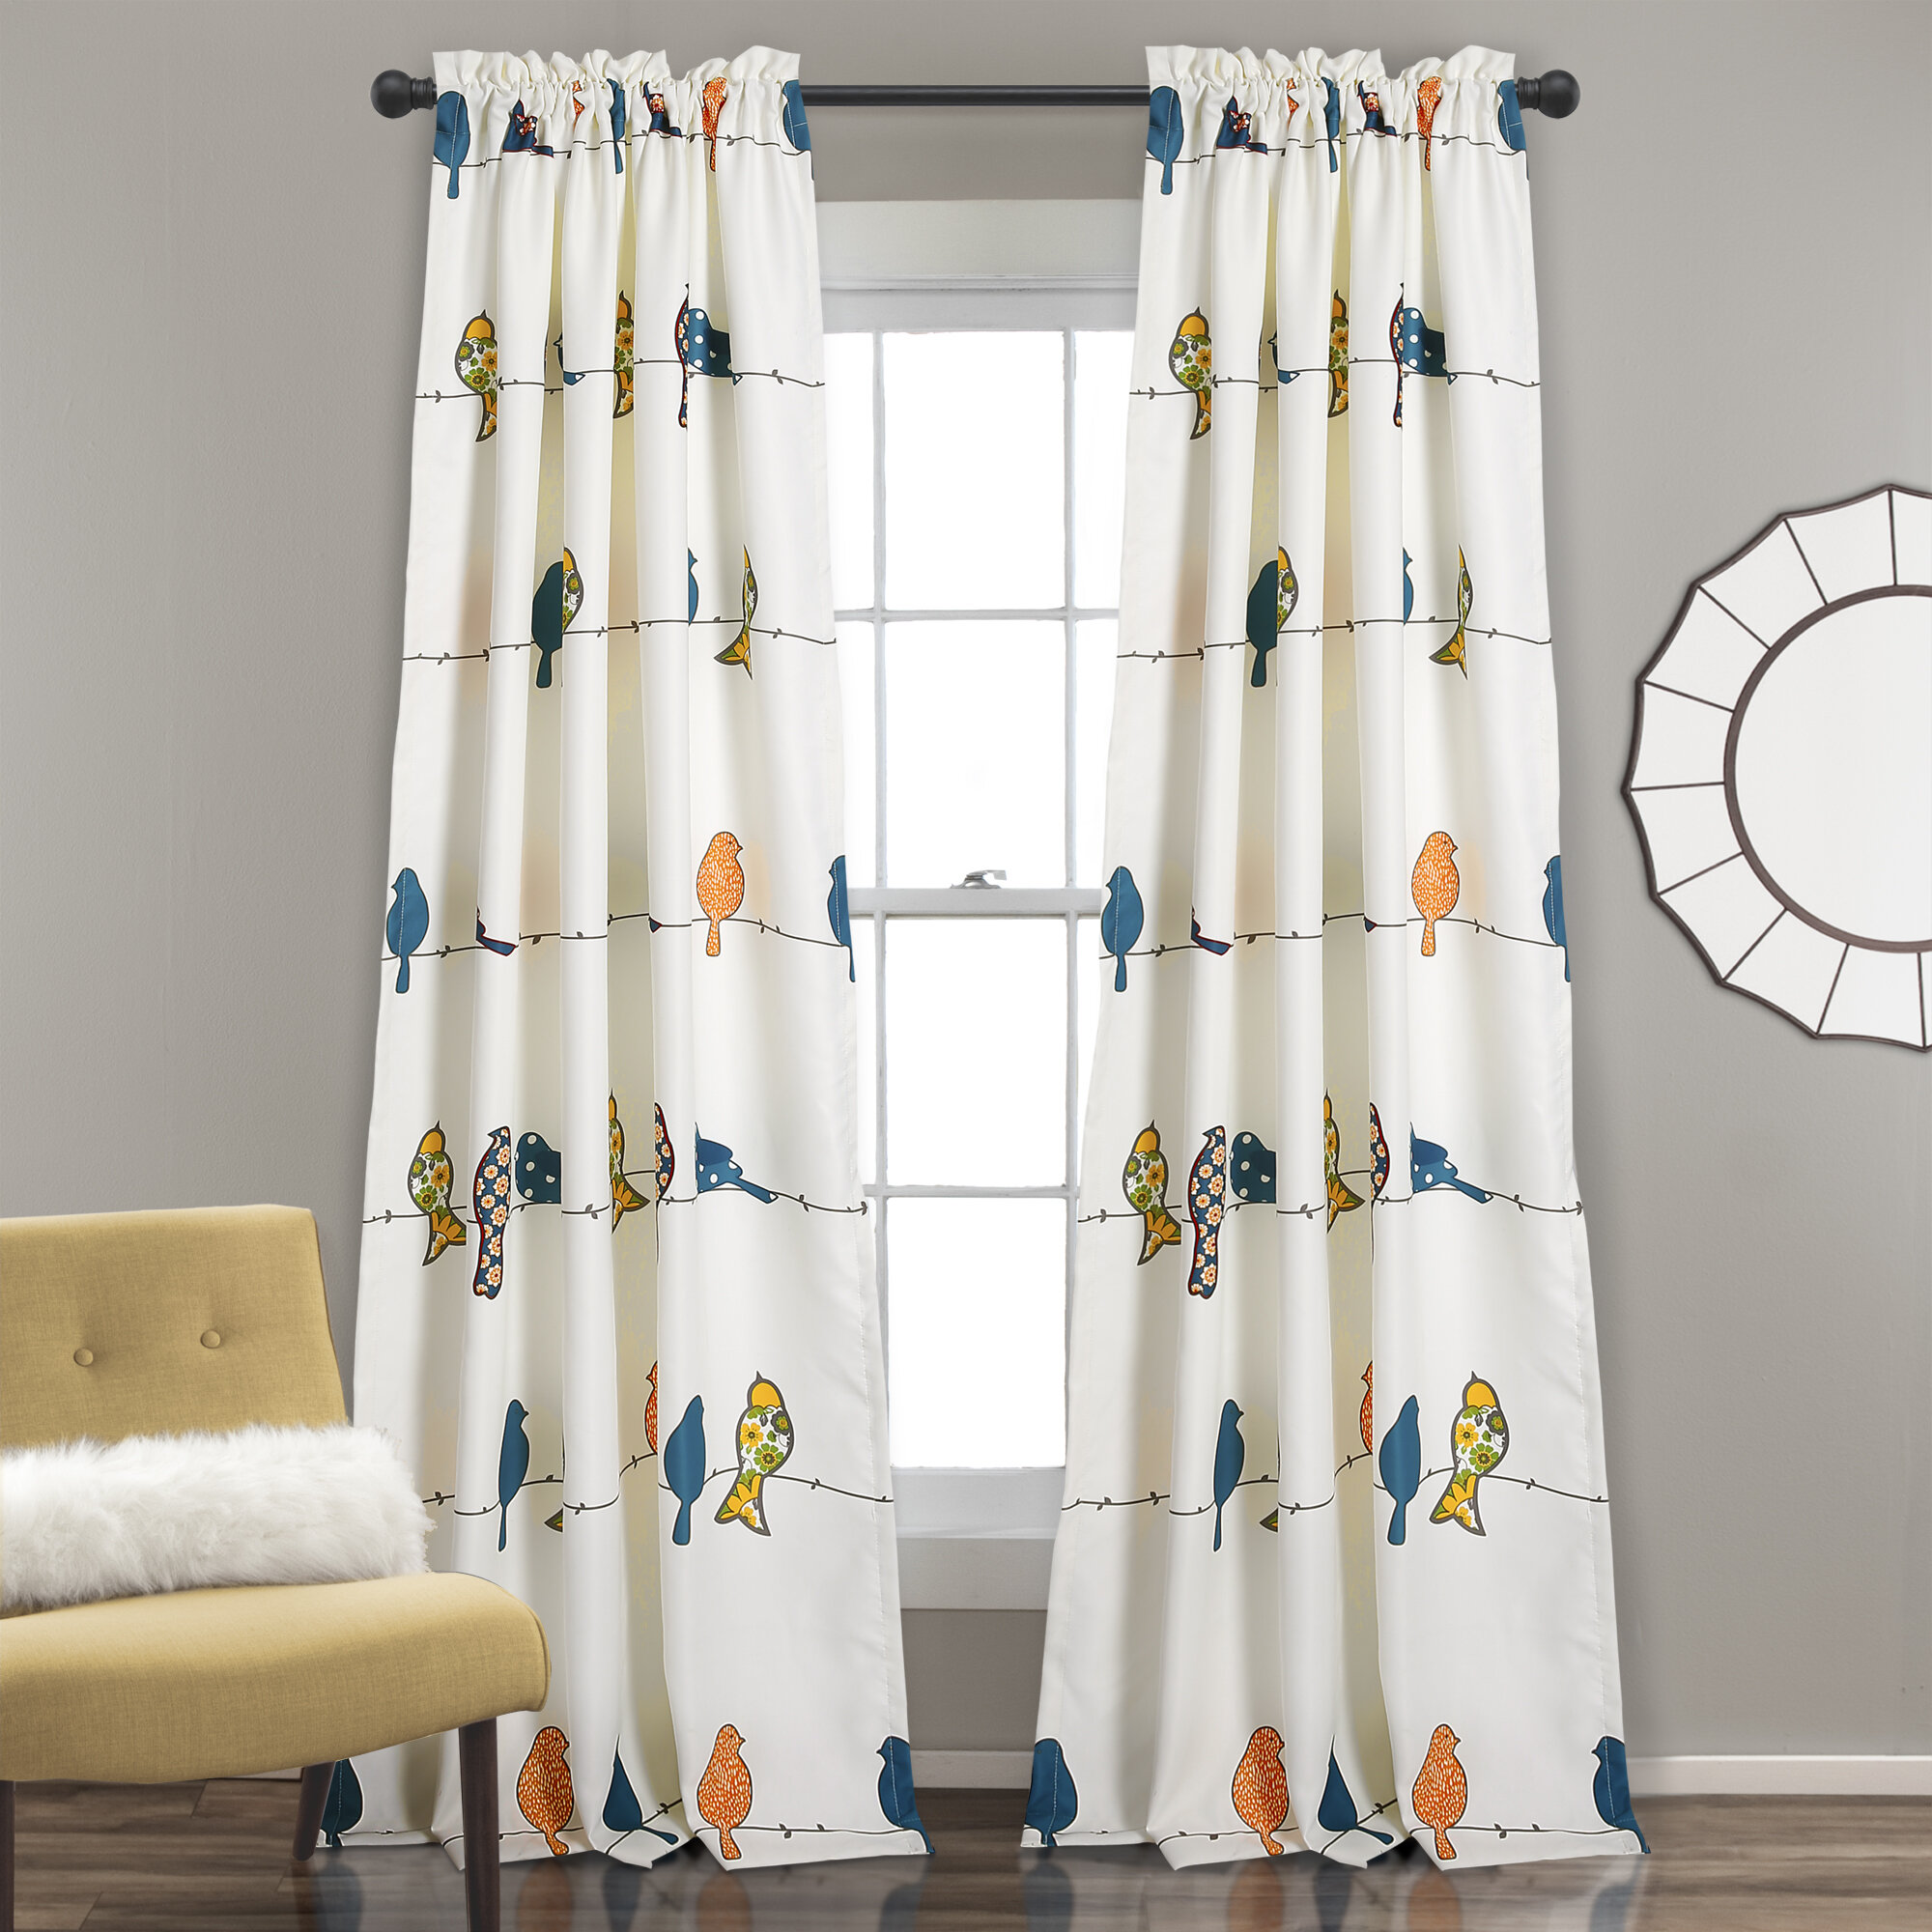 pocket lyric with of curtain walmart panel sheer rod panels designs ideas